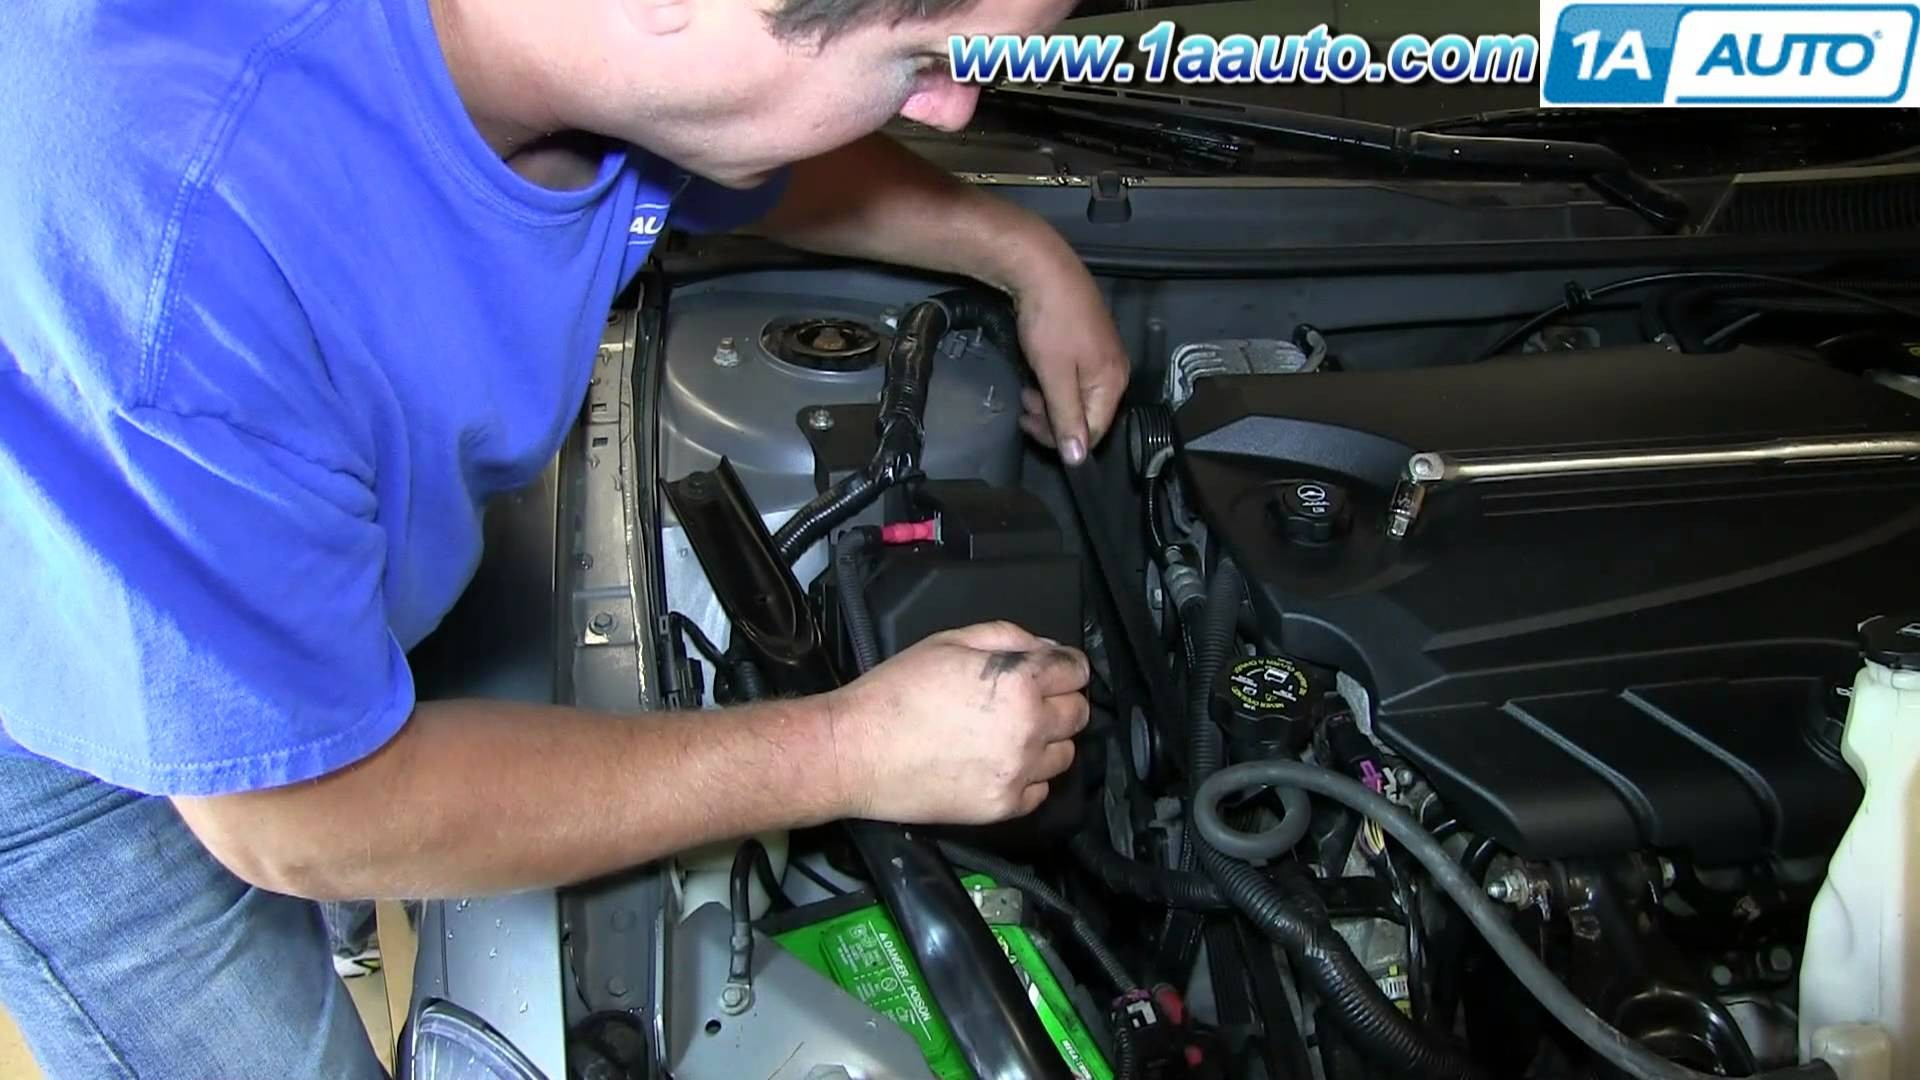 2007 Chevy Uplander Engine Diagram How to Install Replace Engine Serpentine Belt 2006 12 Chevy Impala Of 2007 Chevy Uplander Engine Diagram